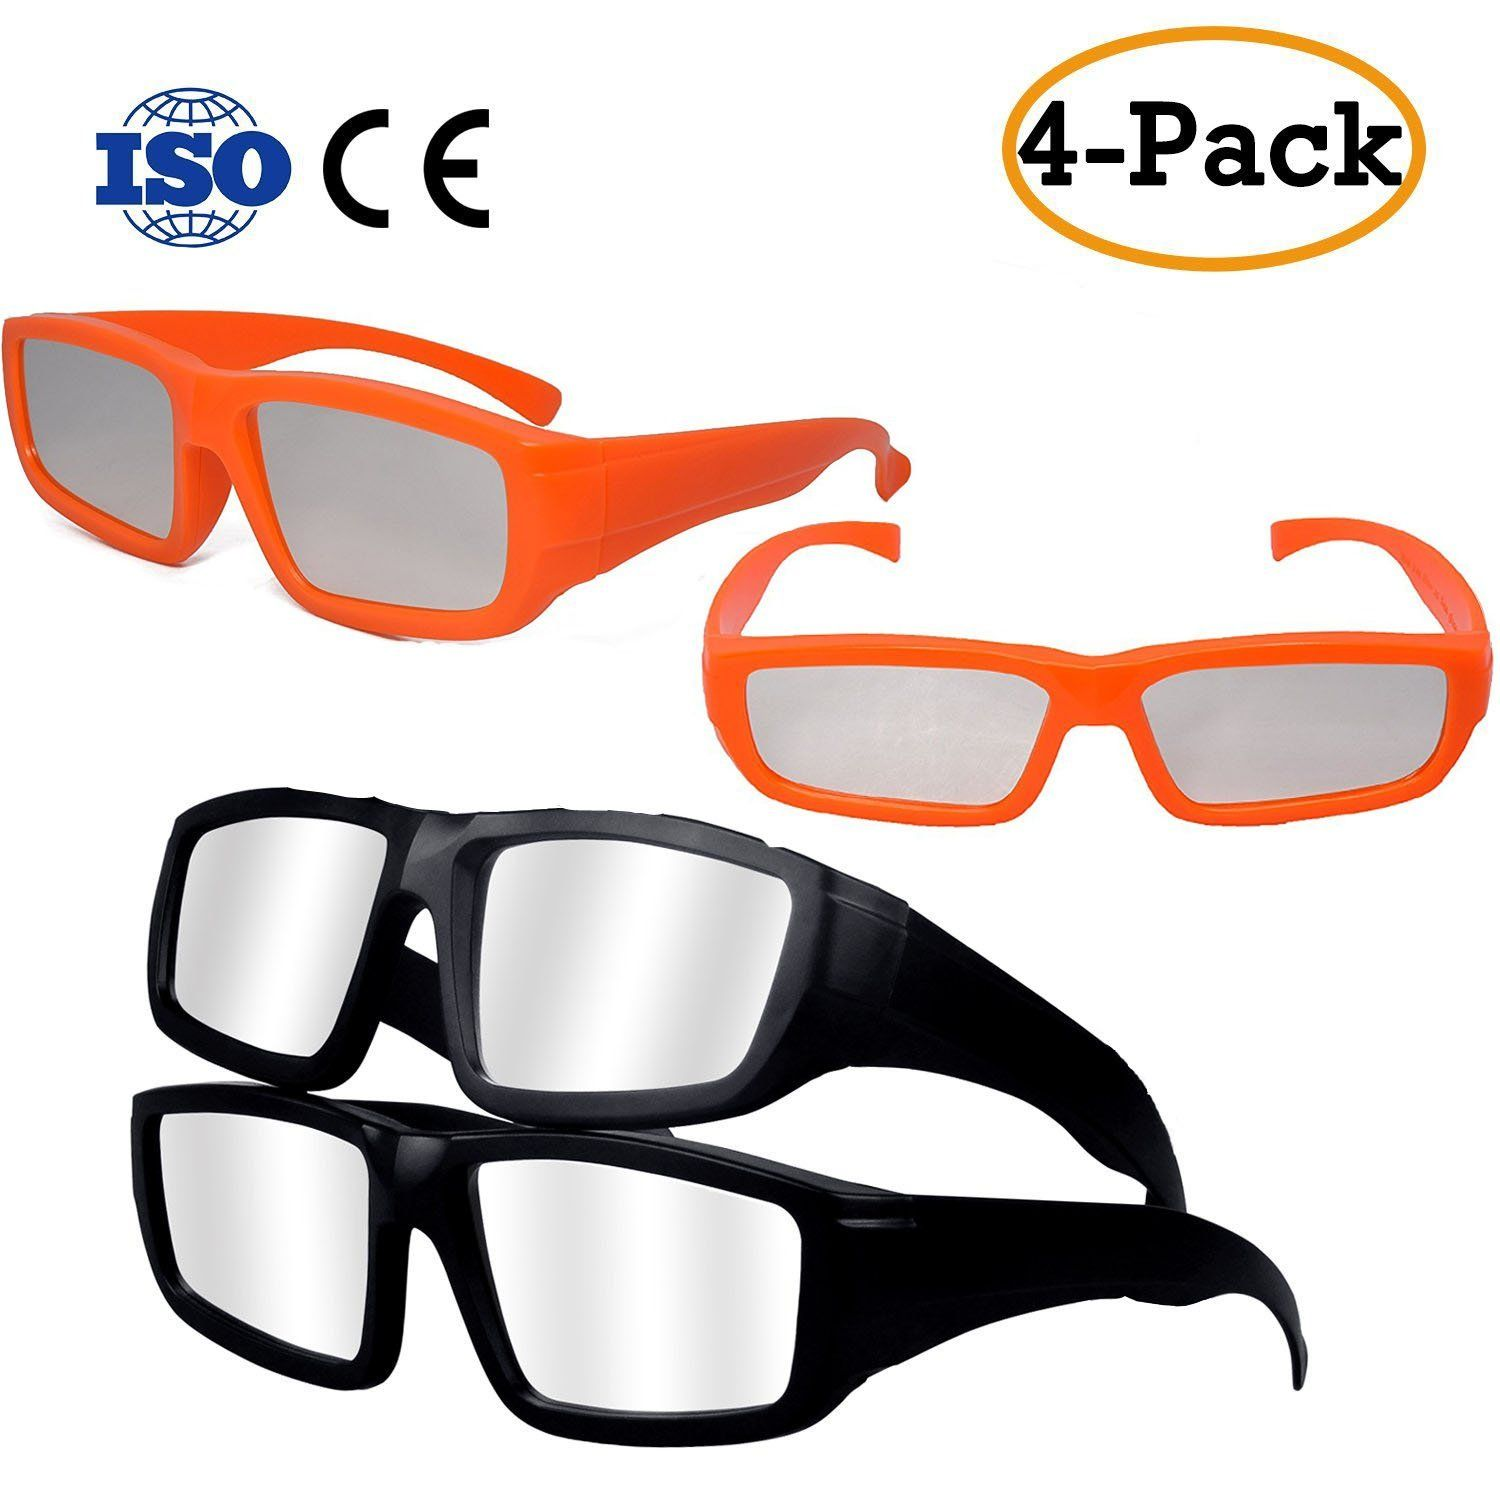 solar eclipse glasses ce and iso